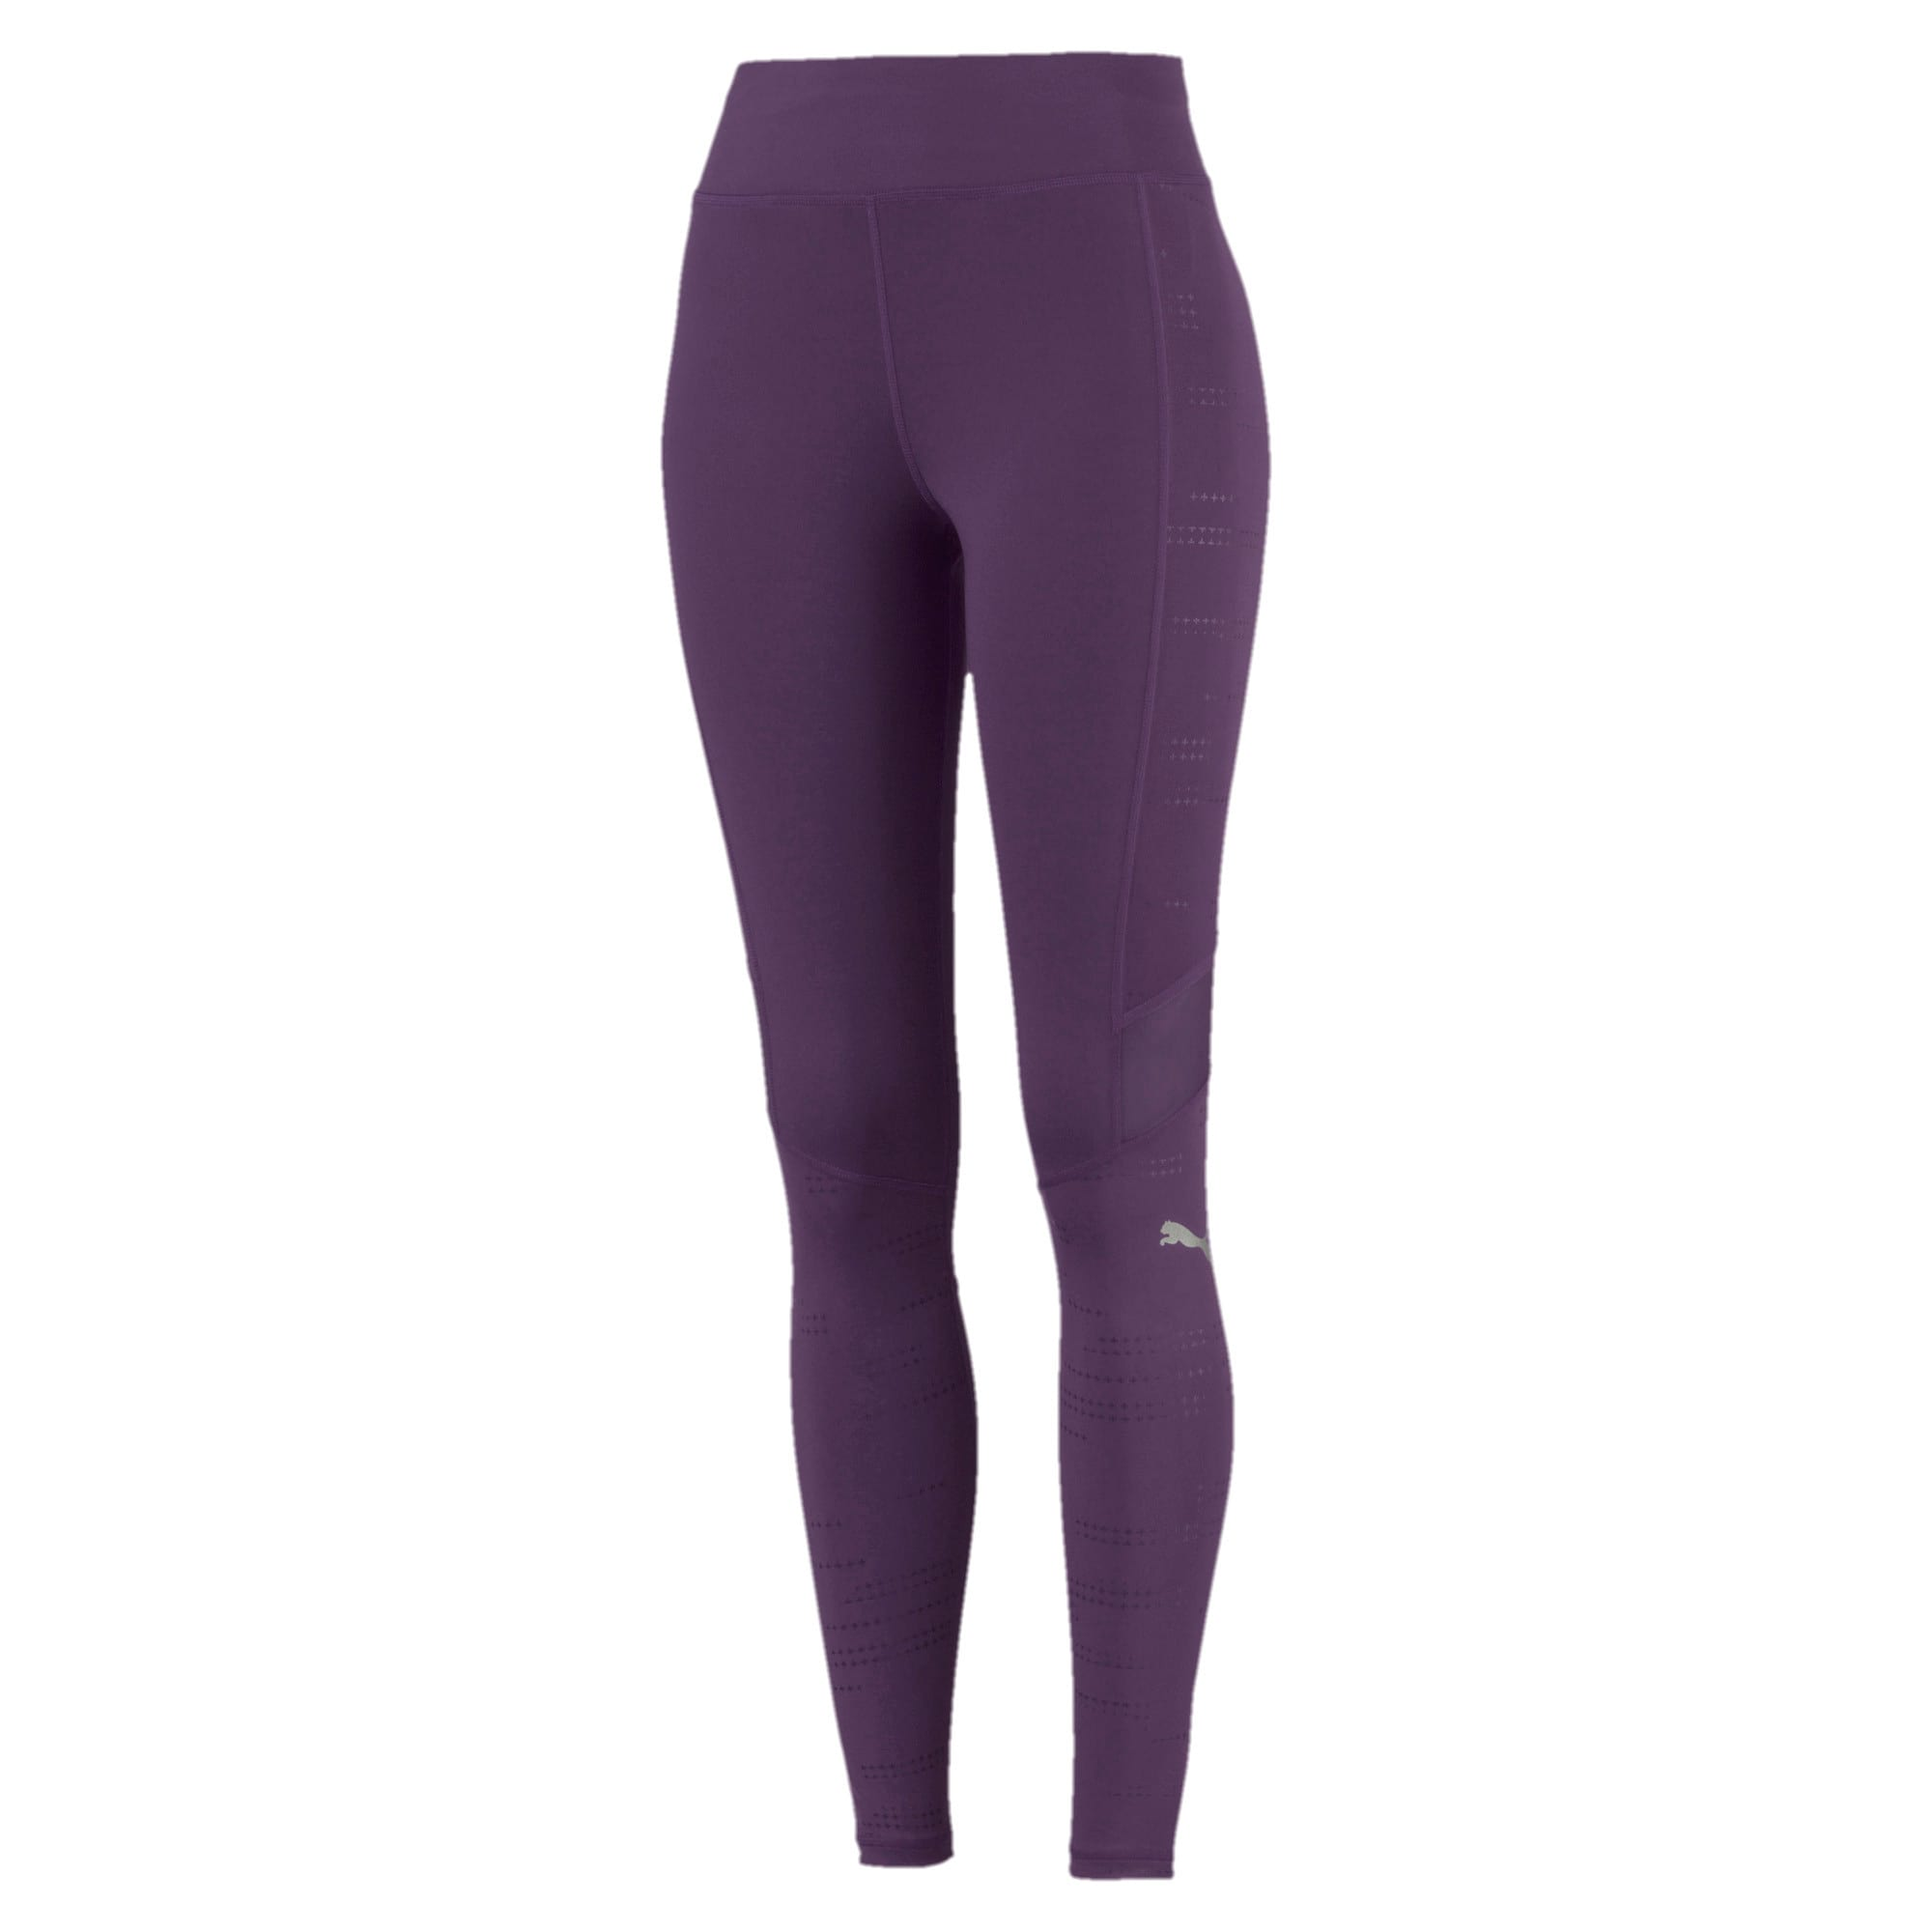 Thumbnail 5 of Ignite Women's Running Leggings, Indigo, medium-IND